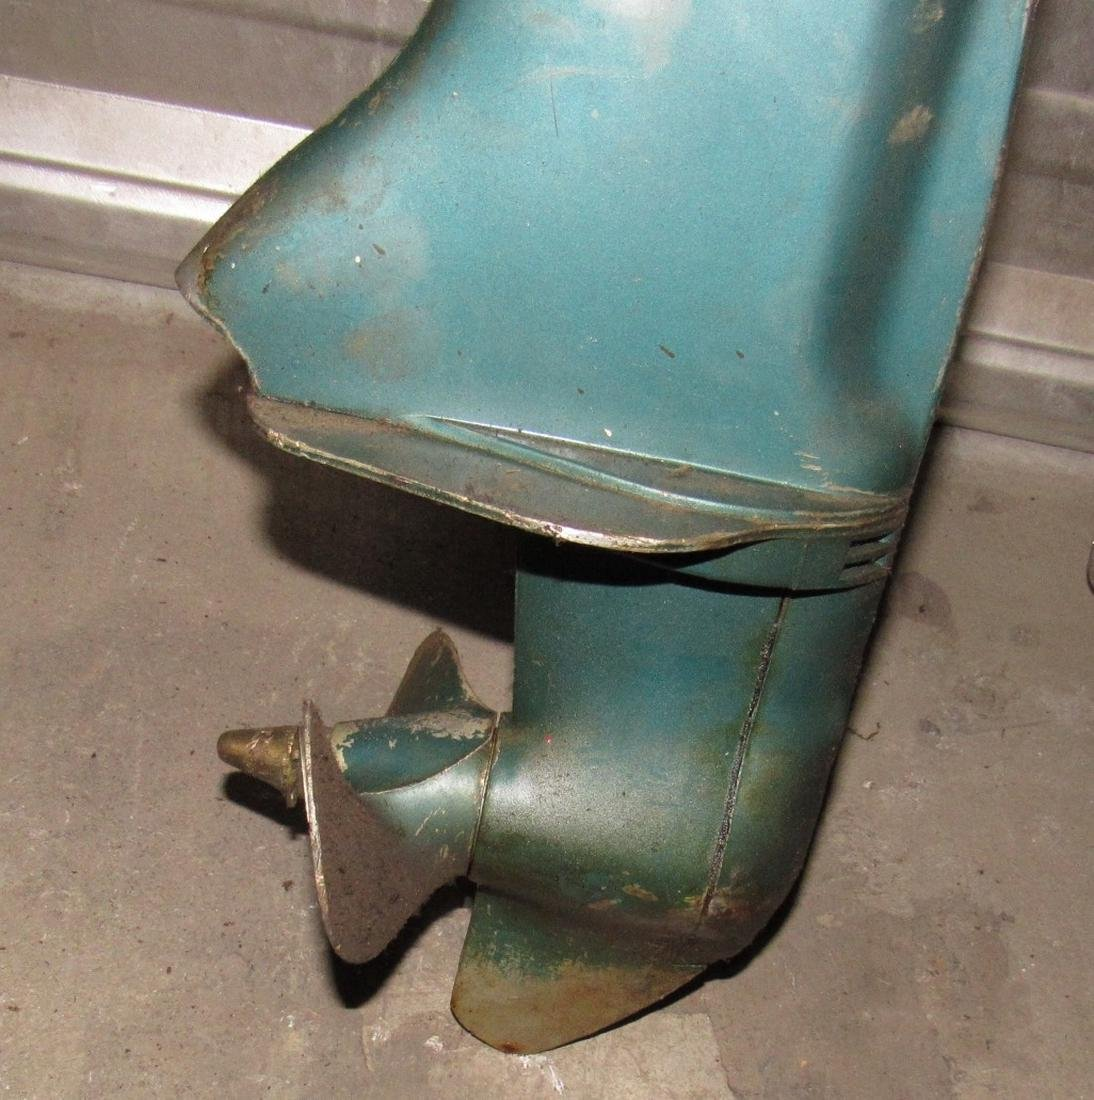 Vintage Scott Atwater 3.6hp Outboard Boat Motor - 4